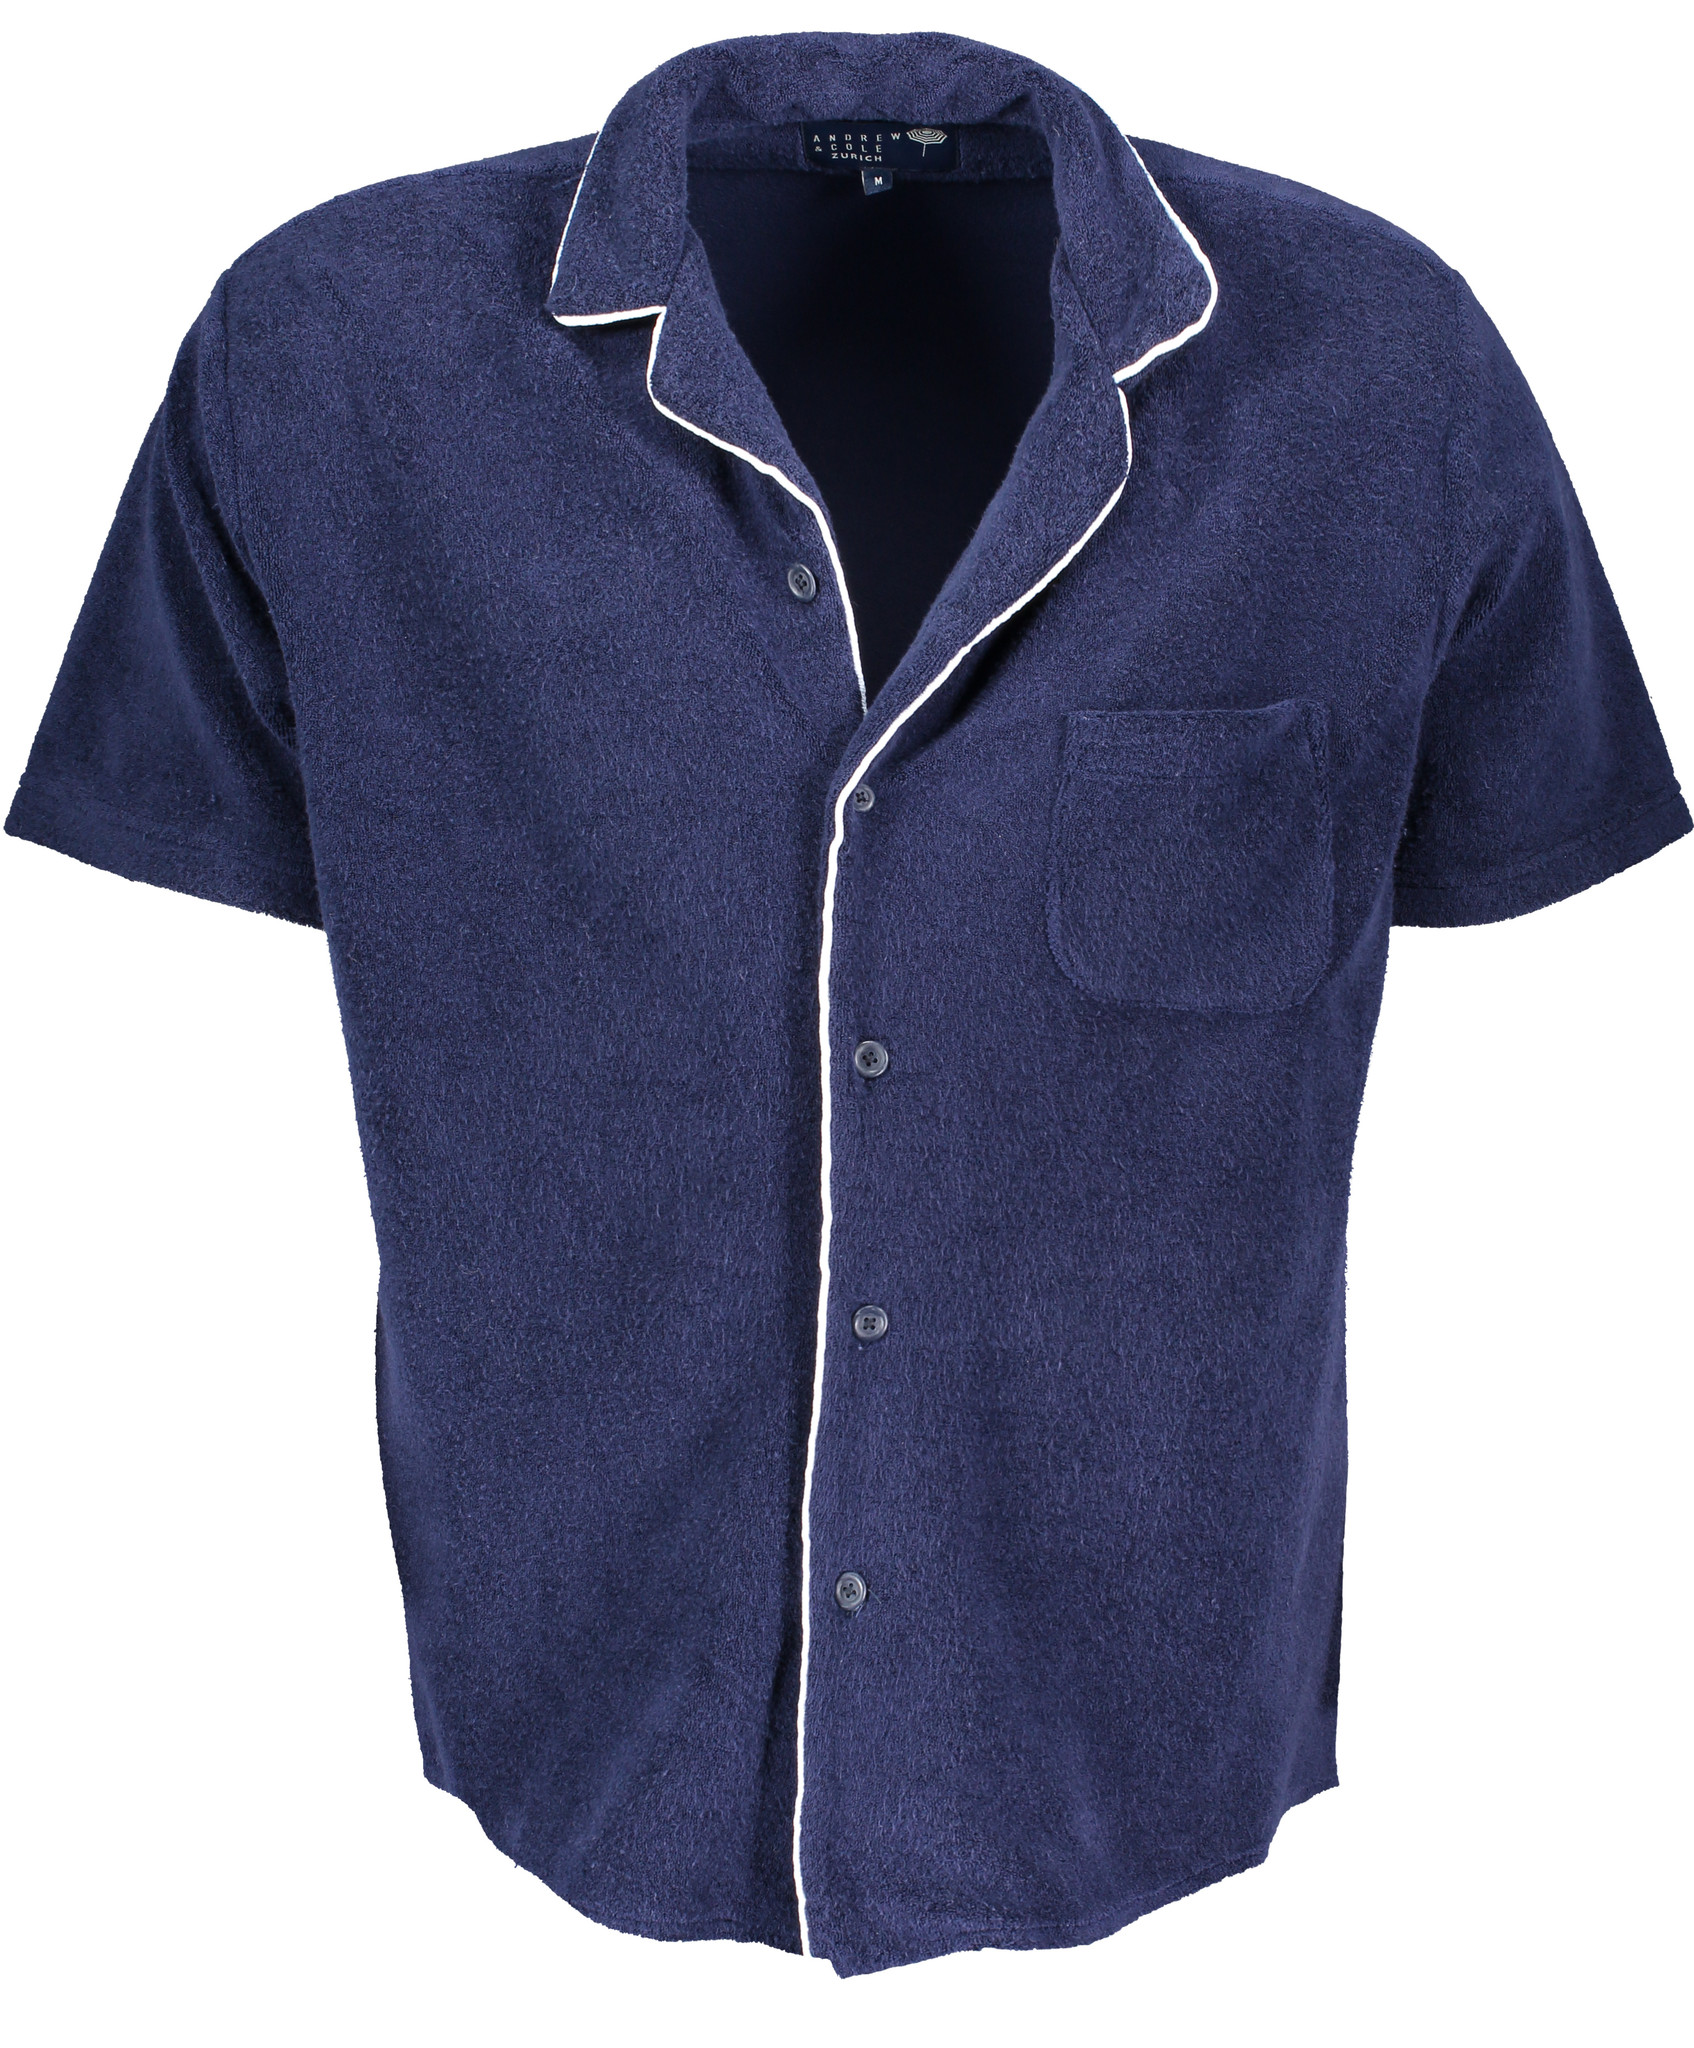 Men's short sleeve Shirt Terry Towel Fabric Blue-2